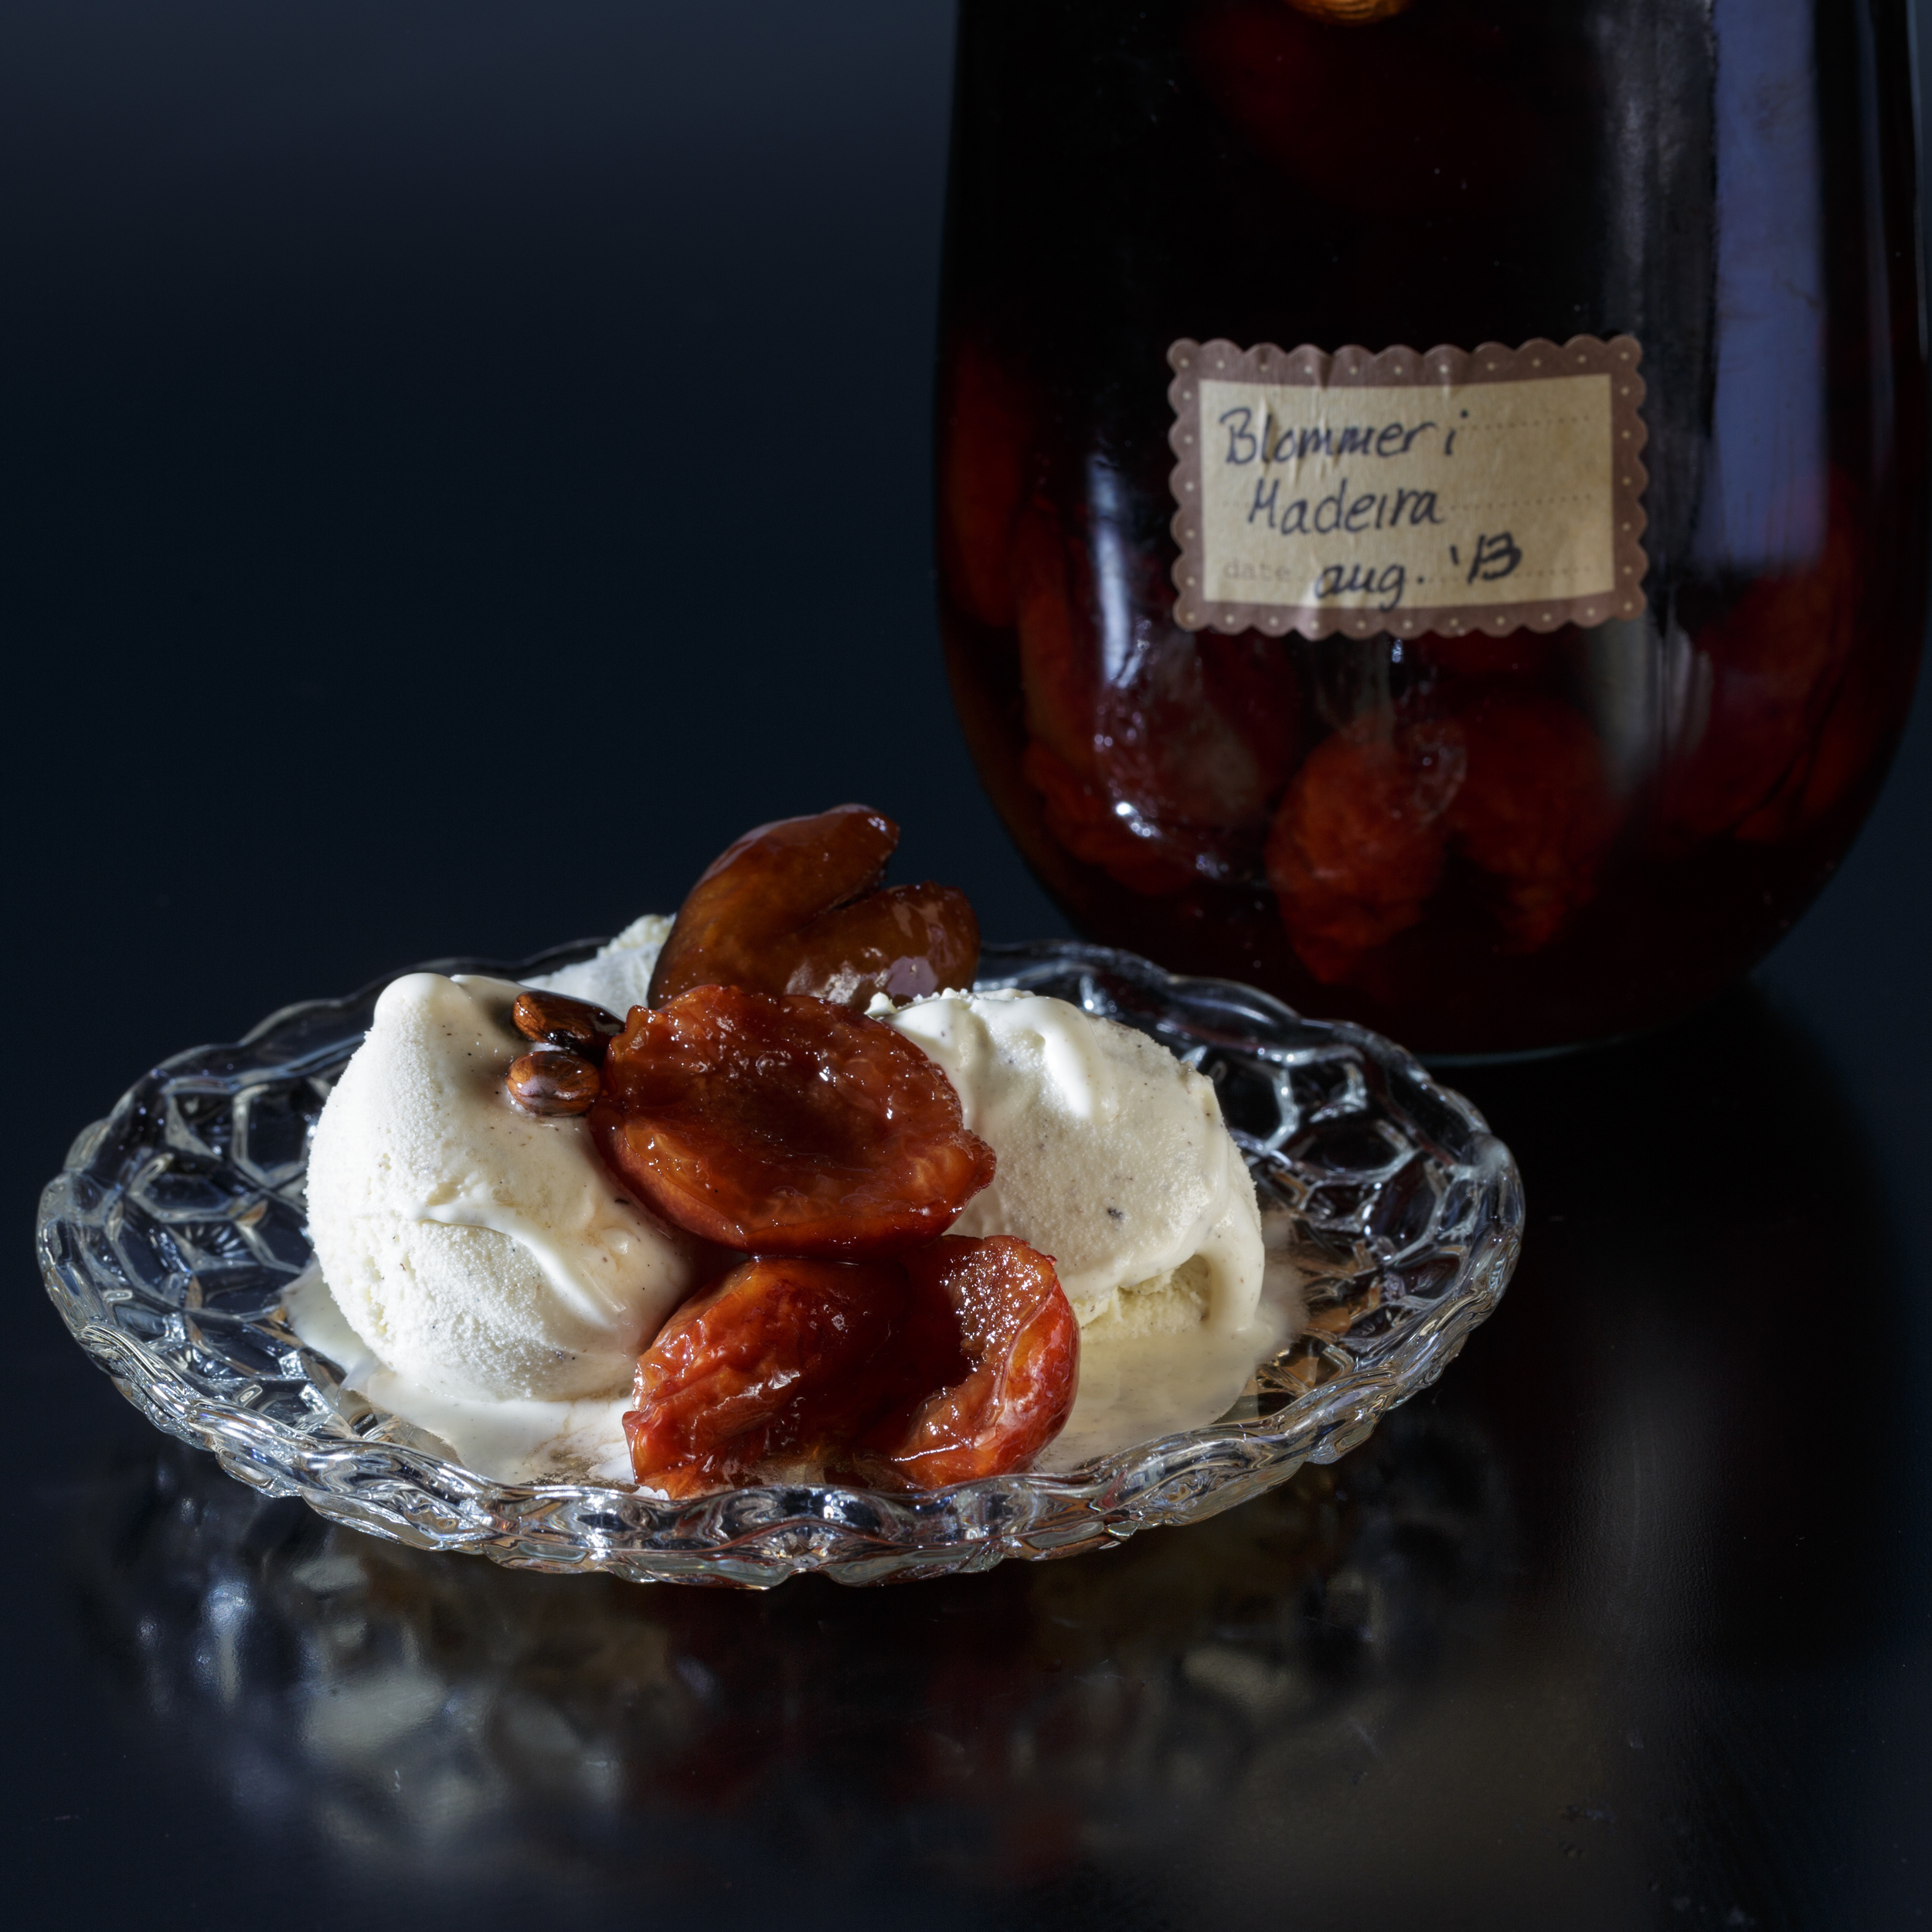 Plums in Madeira served over vanilla ice cream